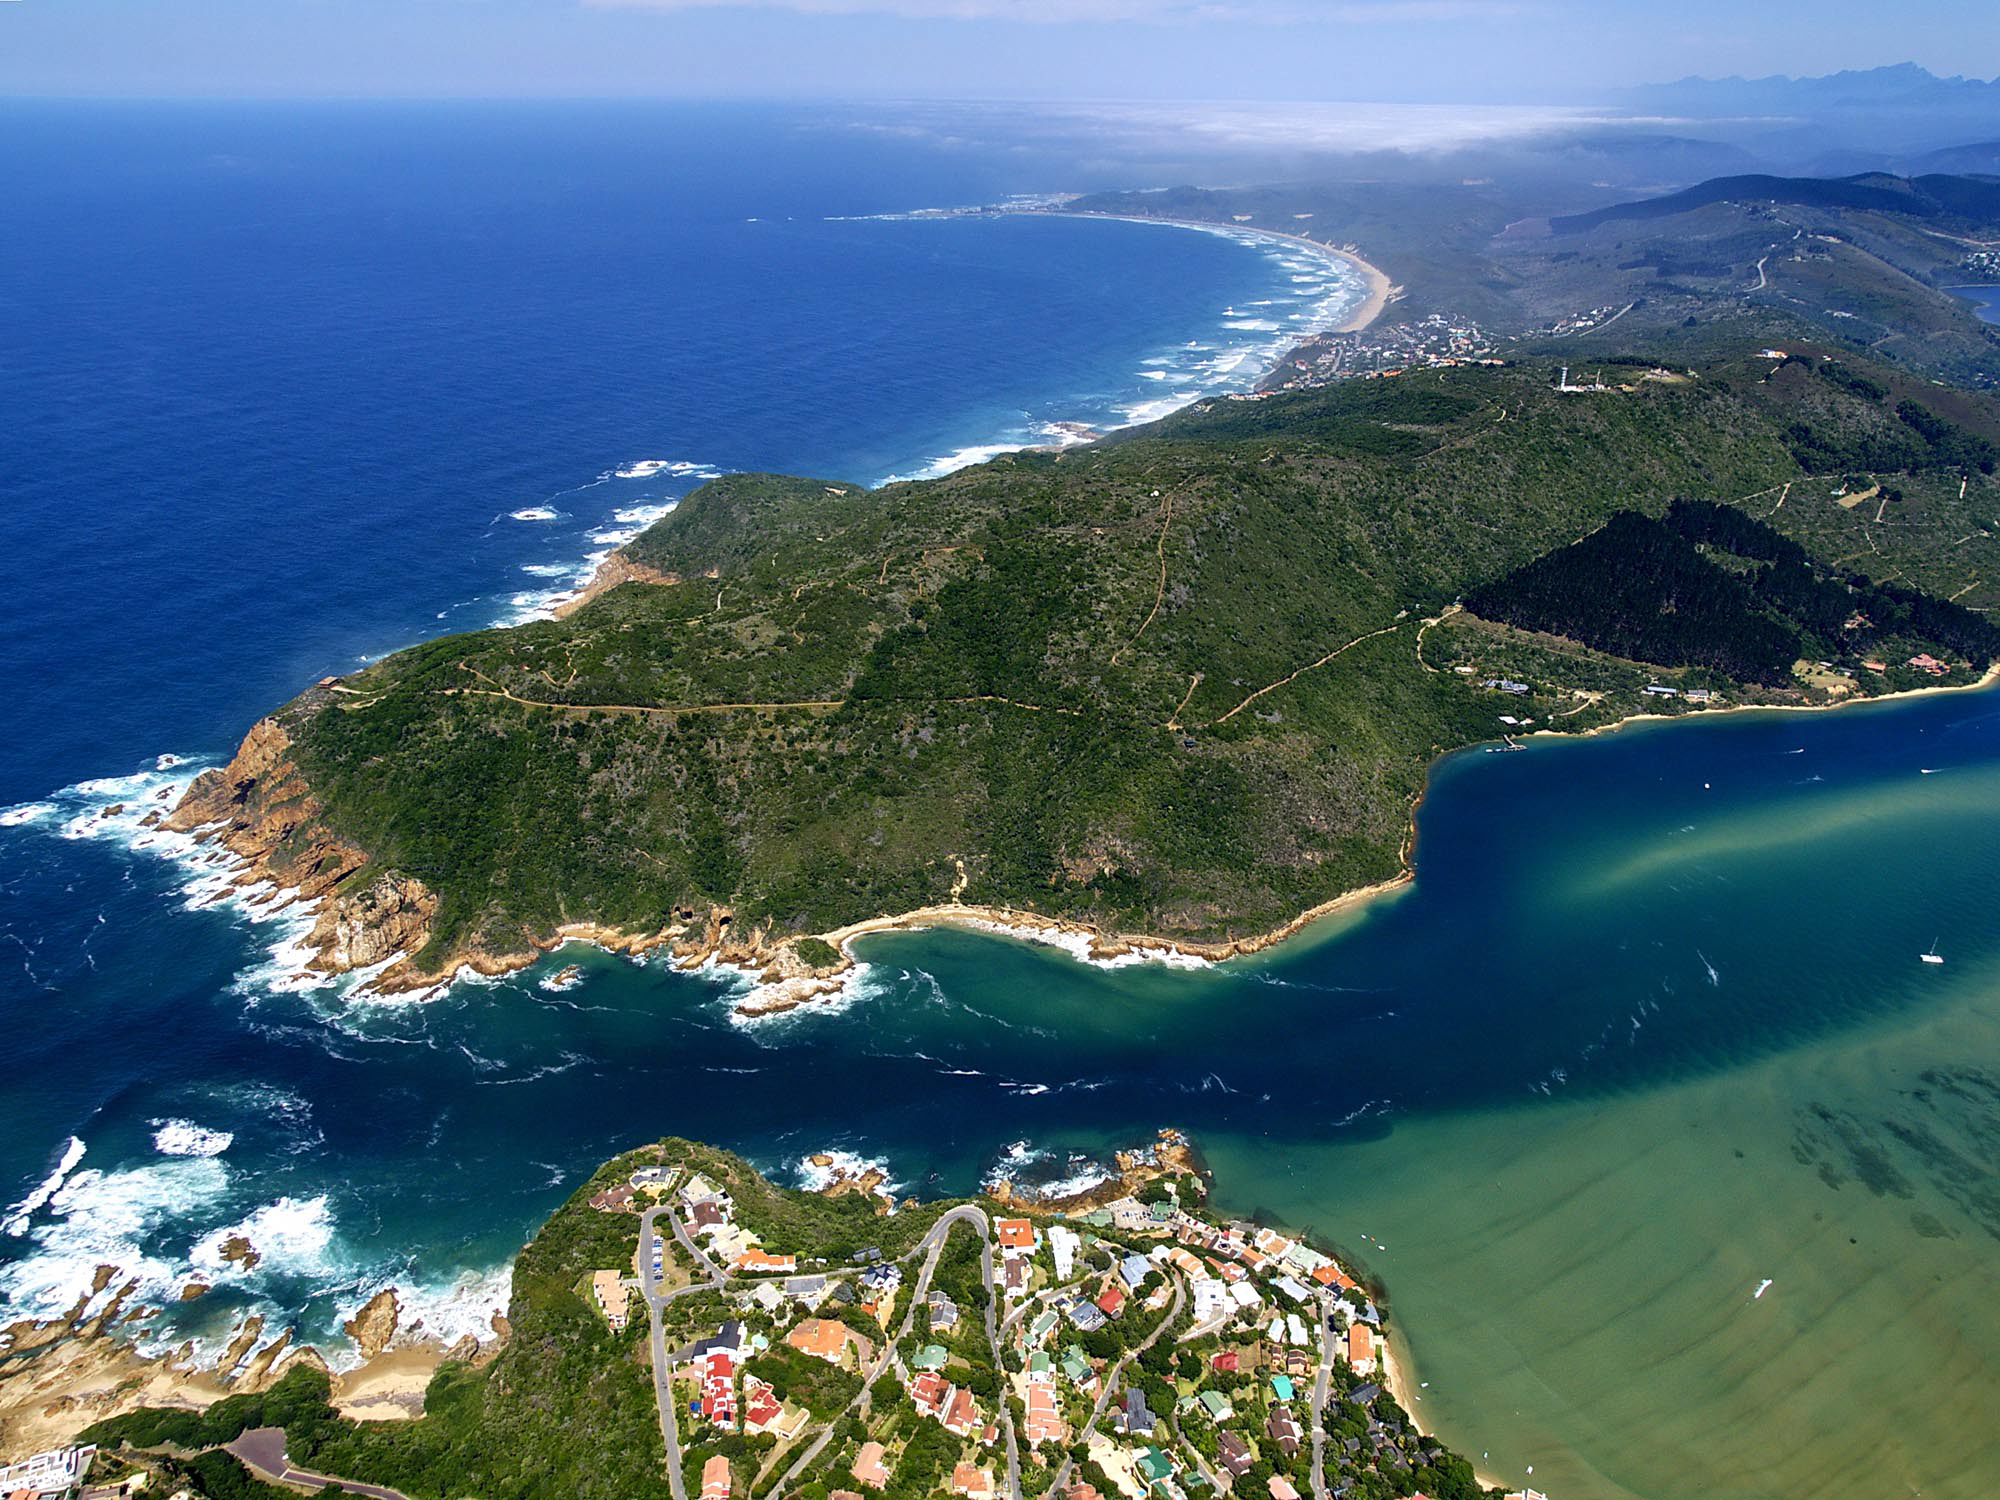 The Knysna Heads and a corner of the Leisure Isle flats.